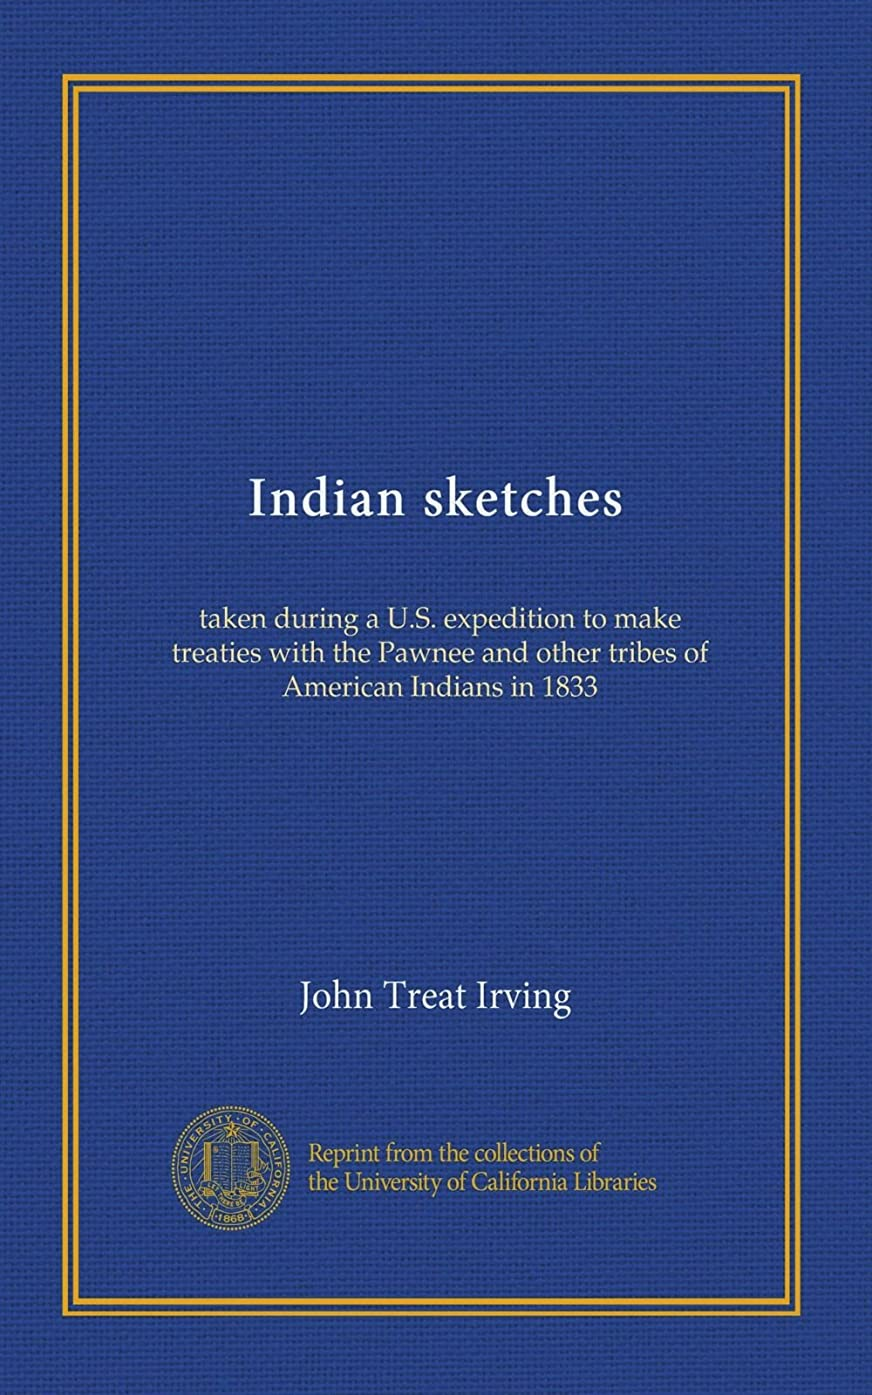 反毒吸収するスプリットIndian sketches: taken during a U.S. expedition to make treaties with the Pawnee and other tribes of American Indians in 1833